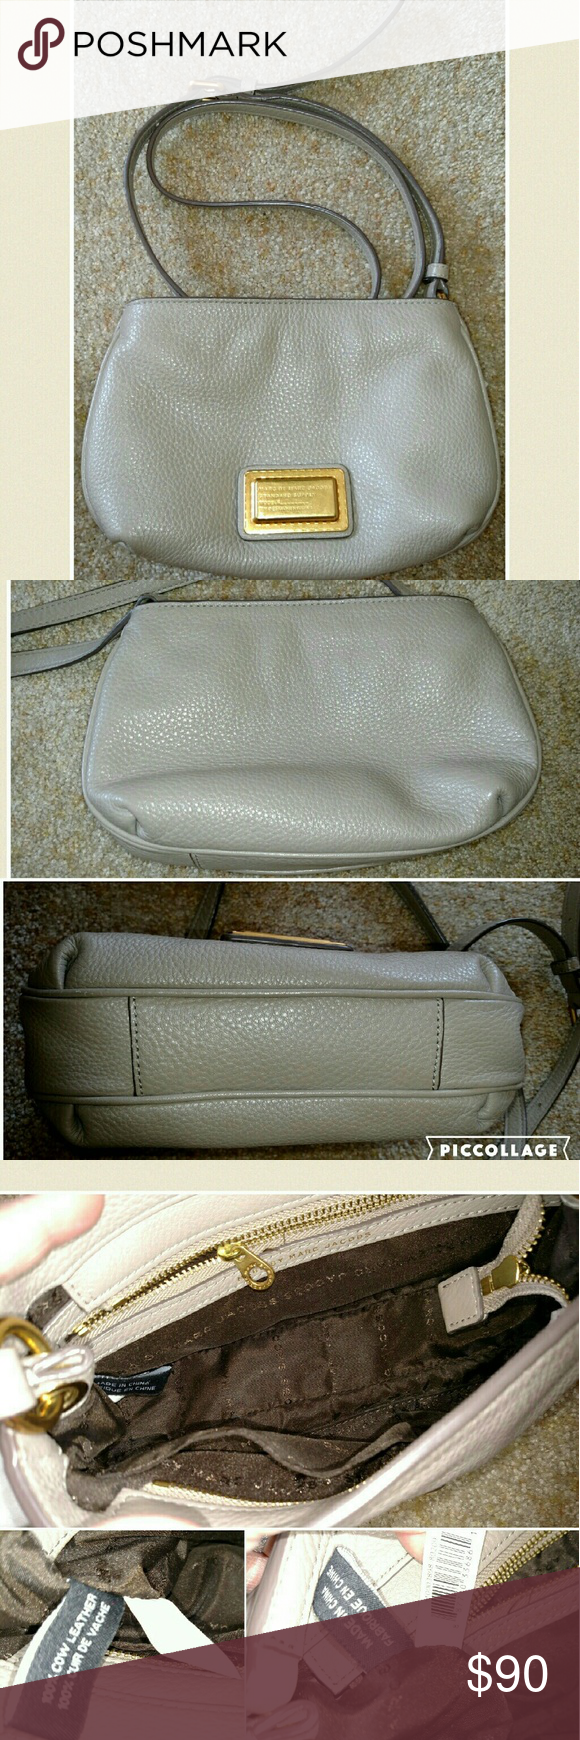 Marc jacobs crossbody purse In very good condition. I m very careful w my  purses. Both interior and exterior very clean. Only sign of wear is a tiny  bit of ... 4fc9d3b4dac8c